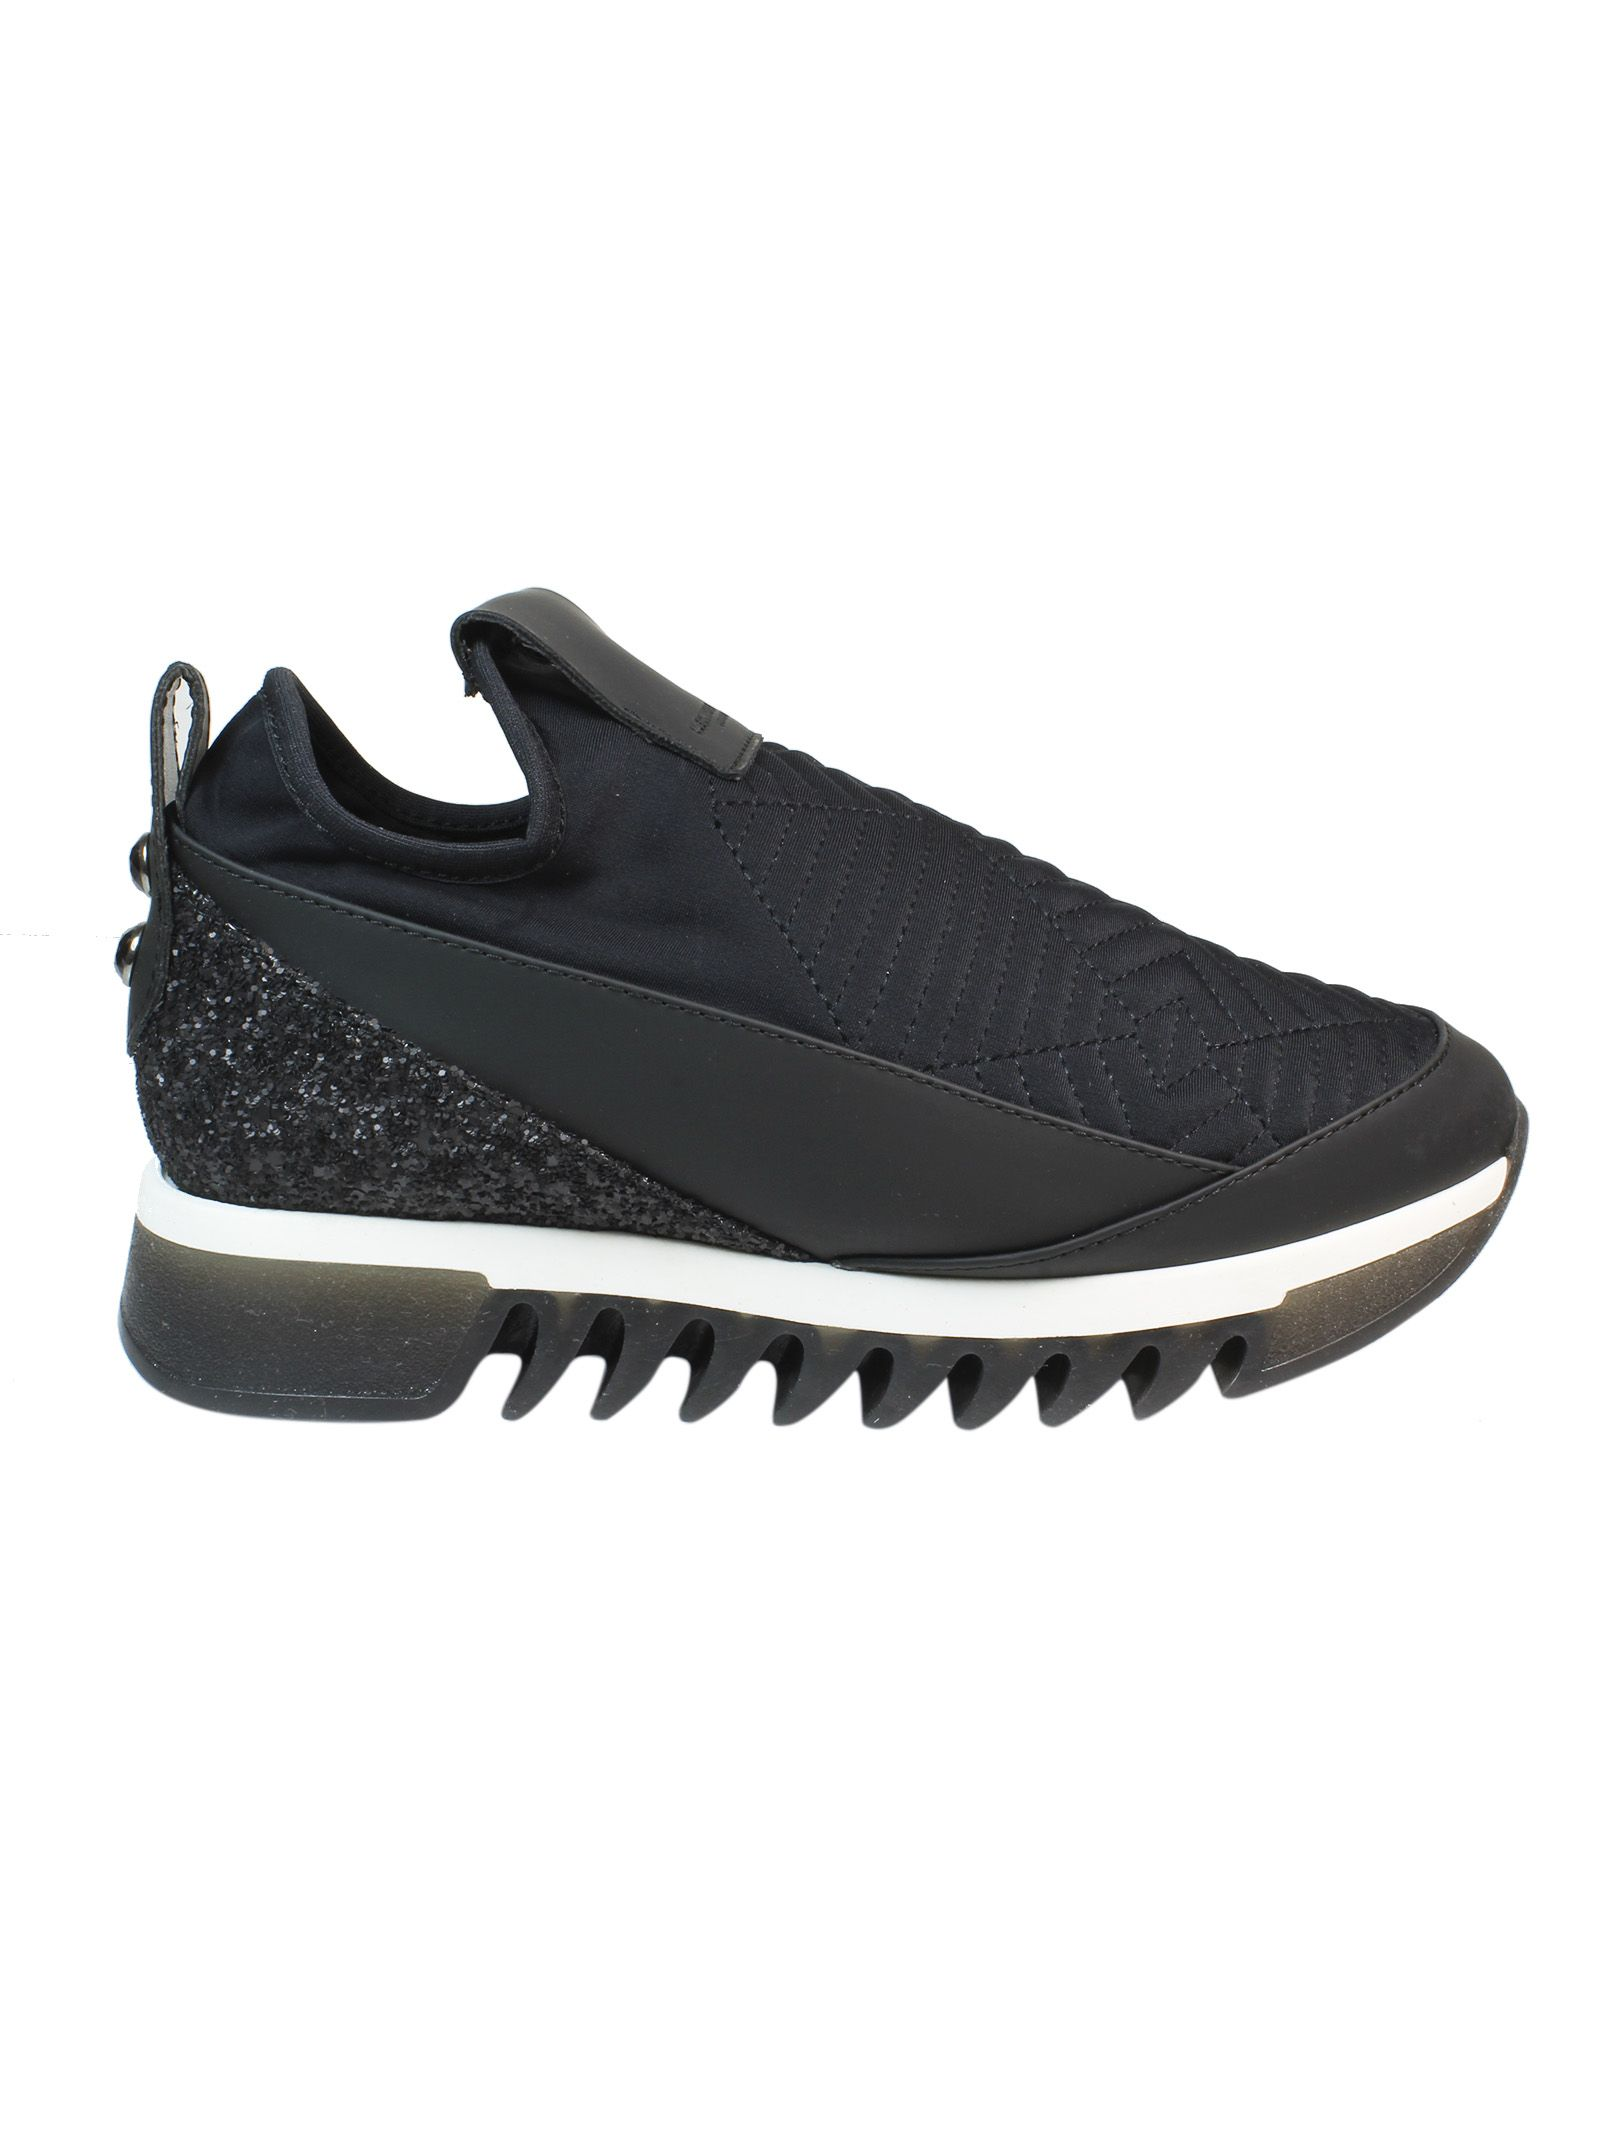 Black Quilted Effect Slip On